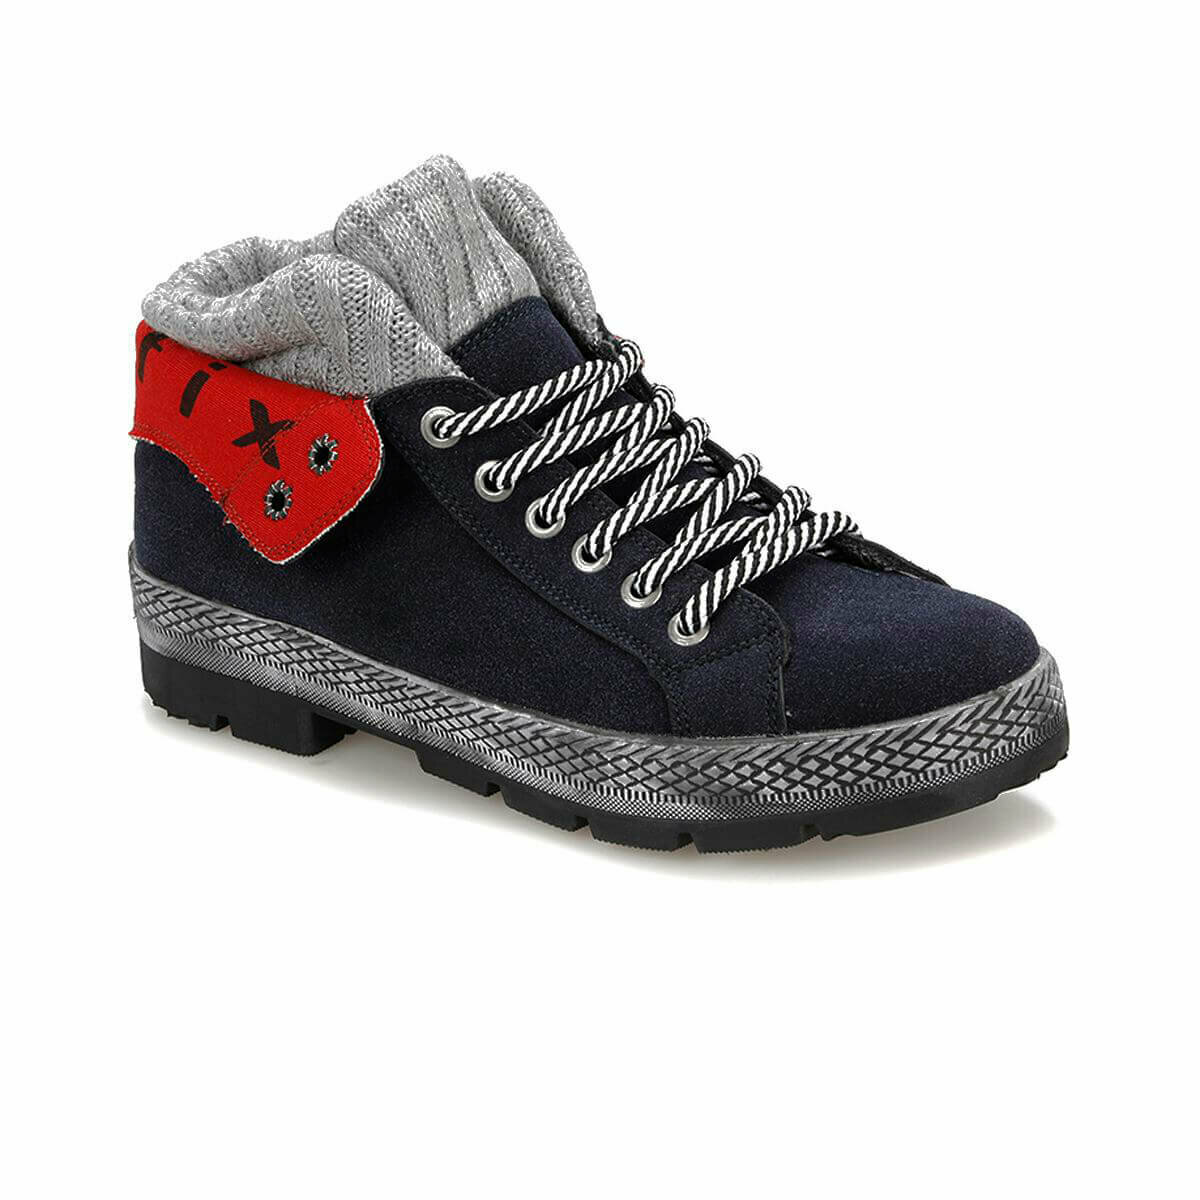 FLO REMI G Navy Blue Male Child Boots KINETIX title=